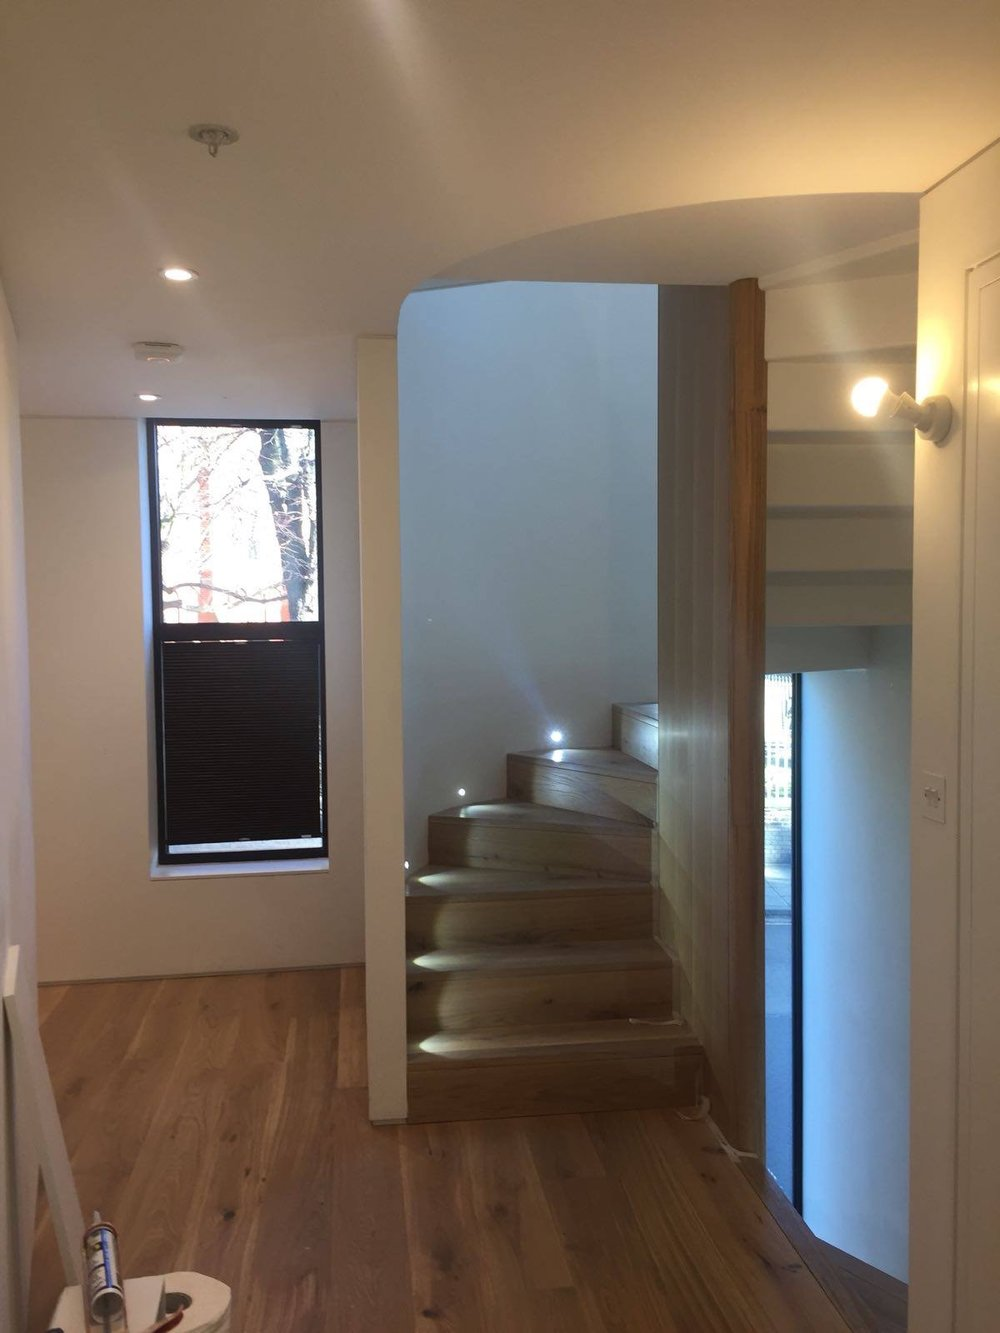 Demolition and new build | London | Internal stairwell lighting